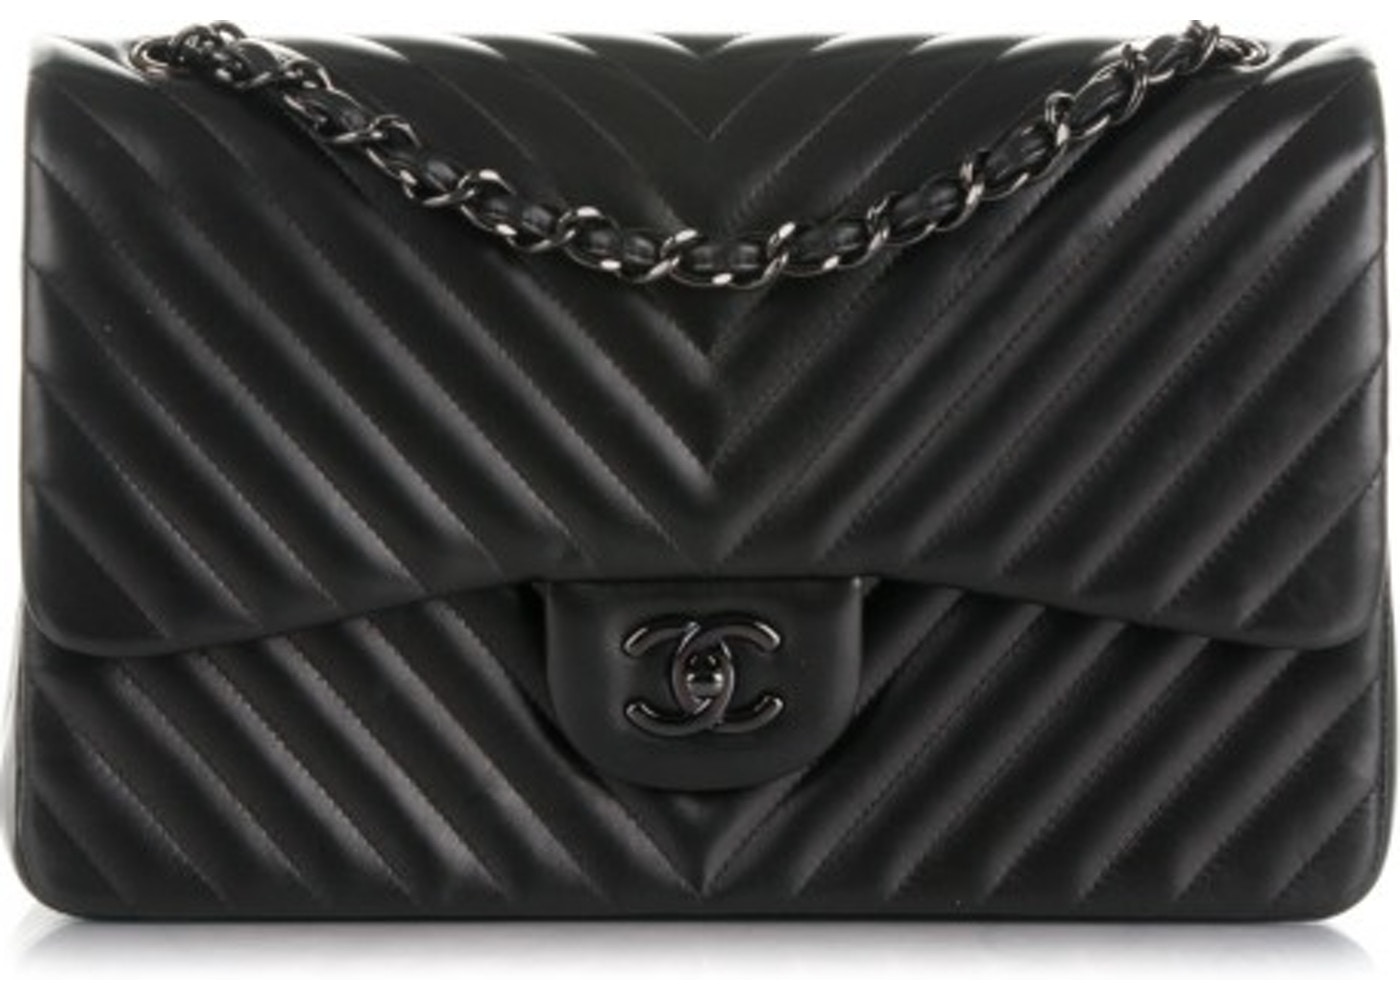 a28456dc9173 Buy & Sell Chanel Flap Handbags - New Highest Bids